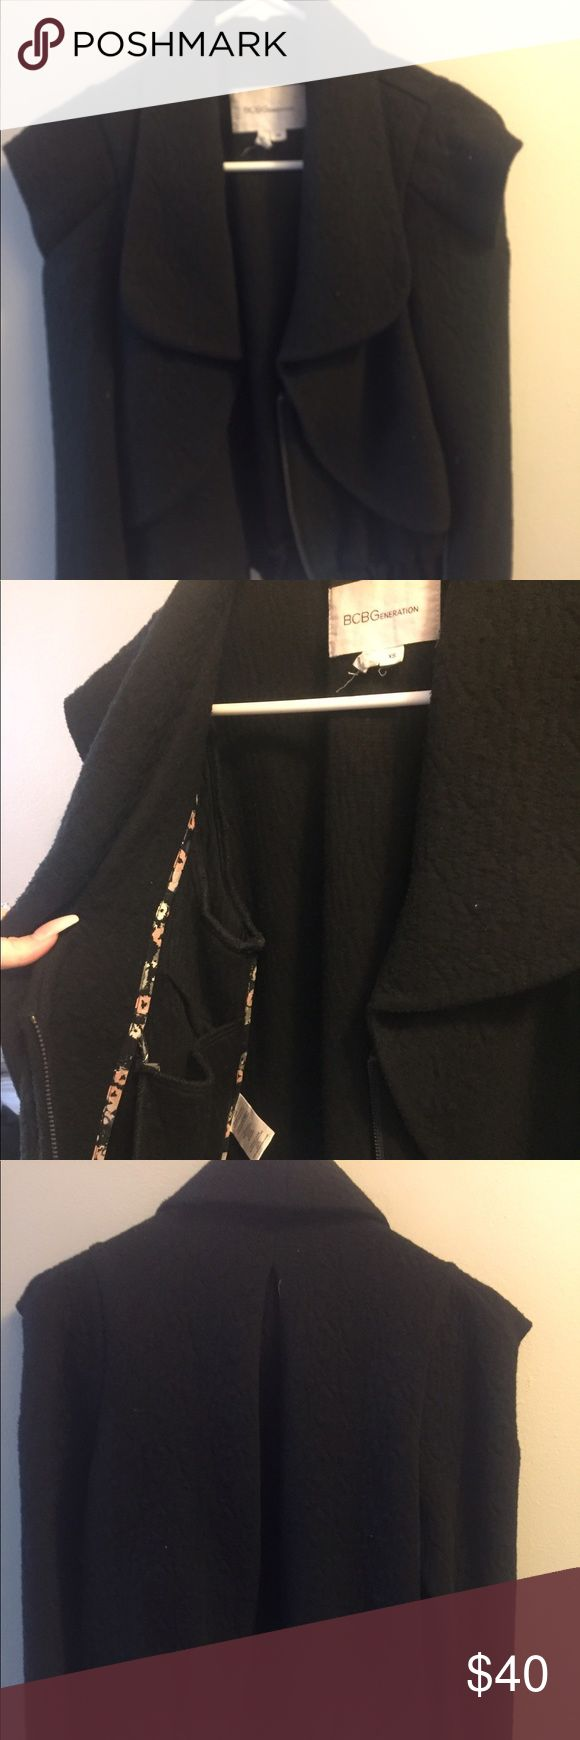 BCBGeneration black jacket Structured, pointer shoulders, comfortable ! Xs, worn like a small, BCBGeneration Jackets & Coats